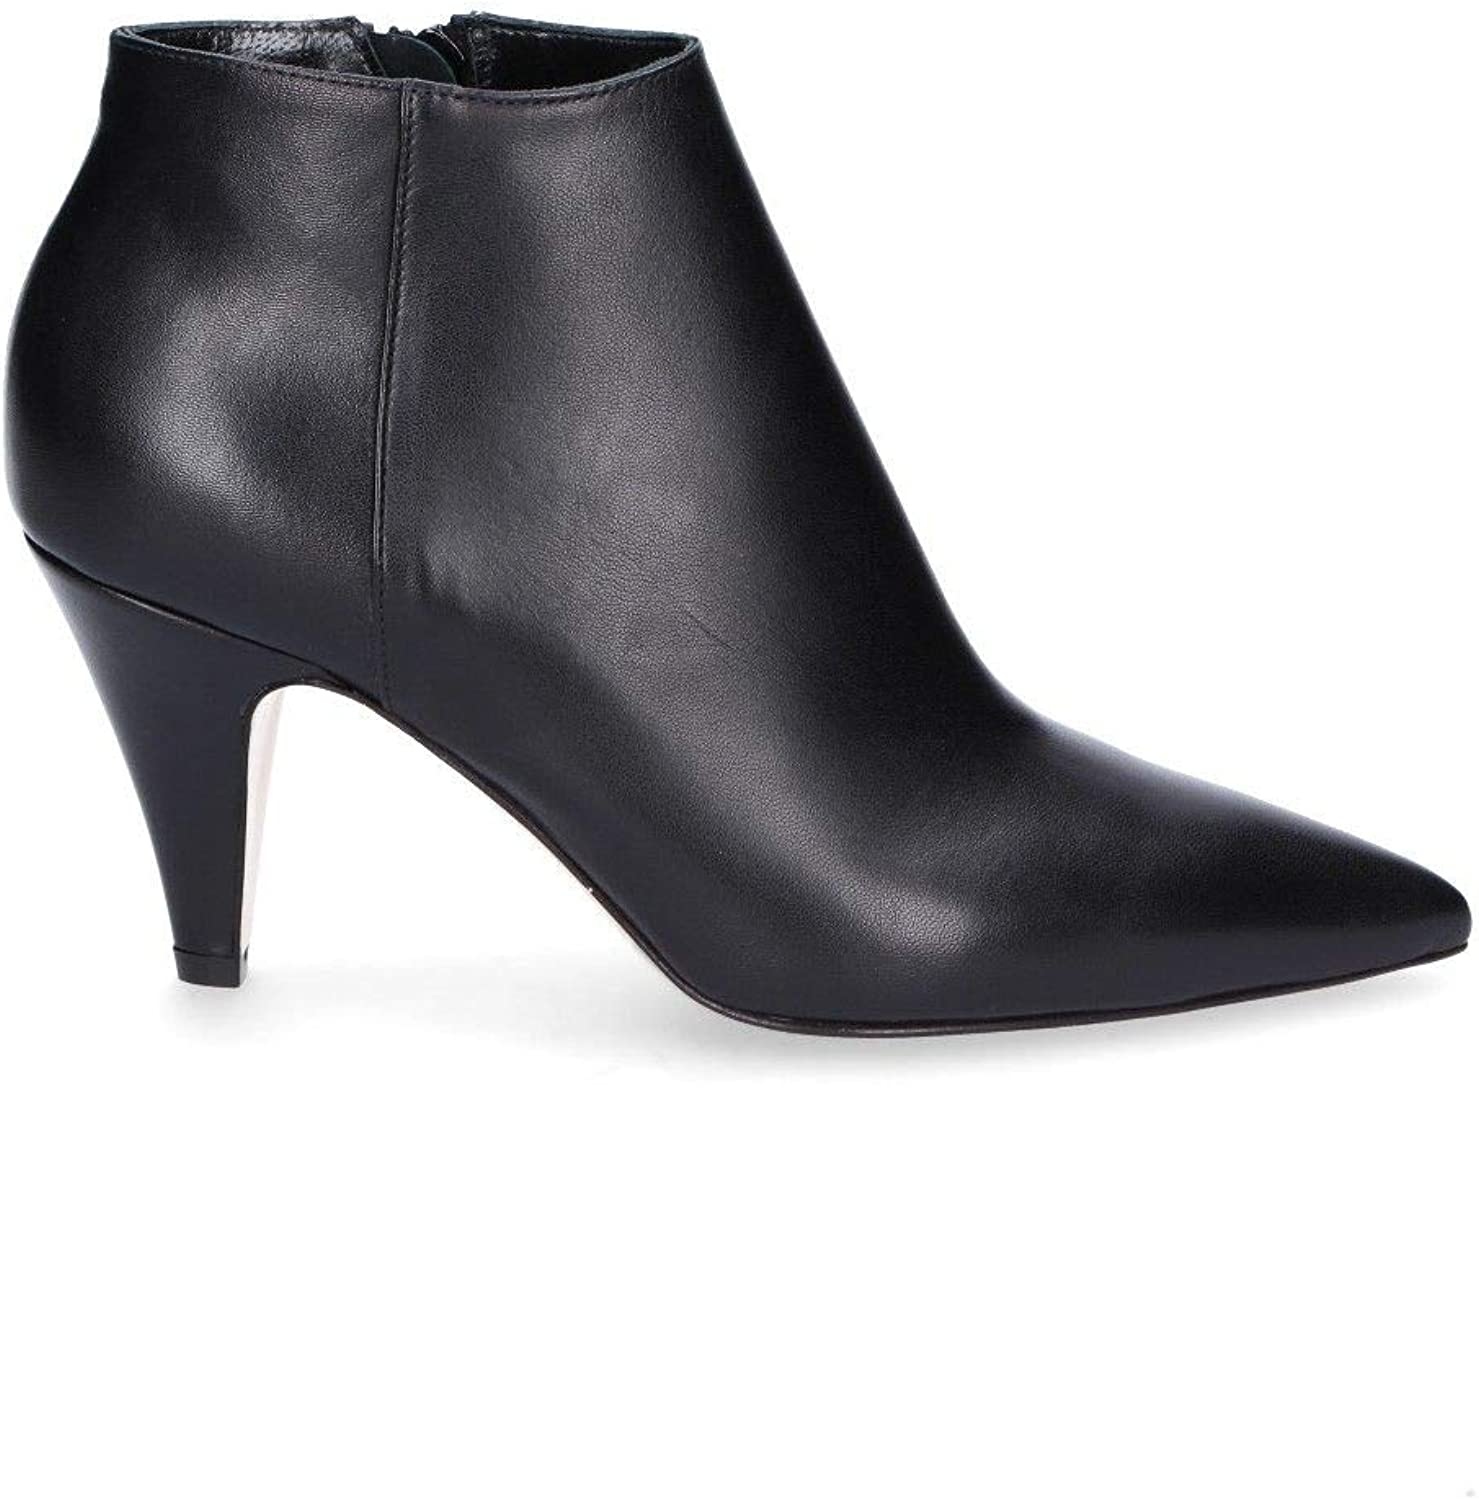 GIAMPAOLO VIOZZI Women's EF601P Black Leather Ankle Boots